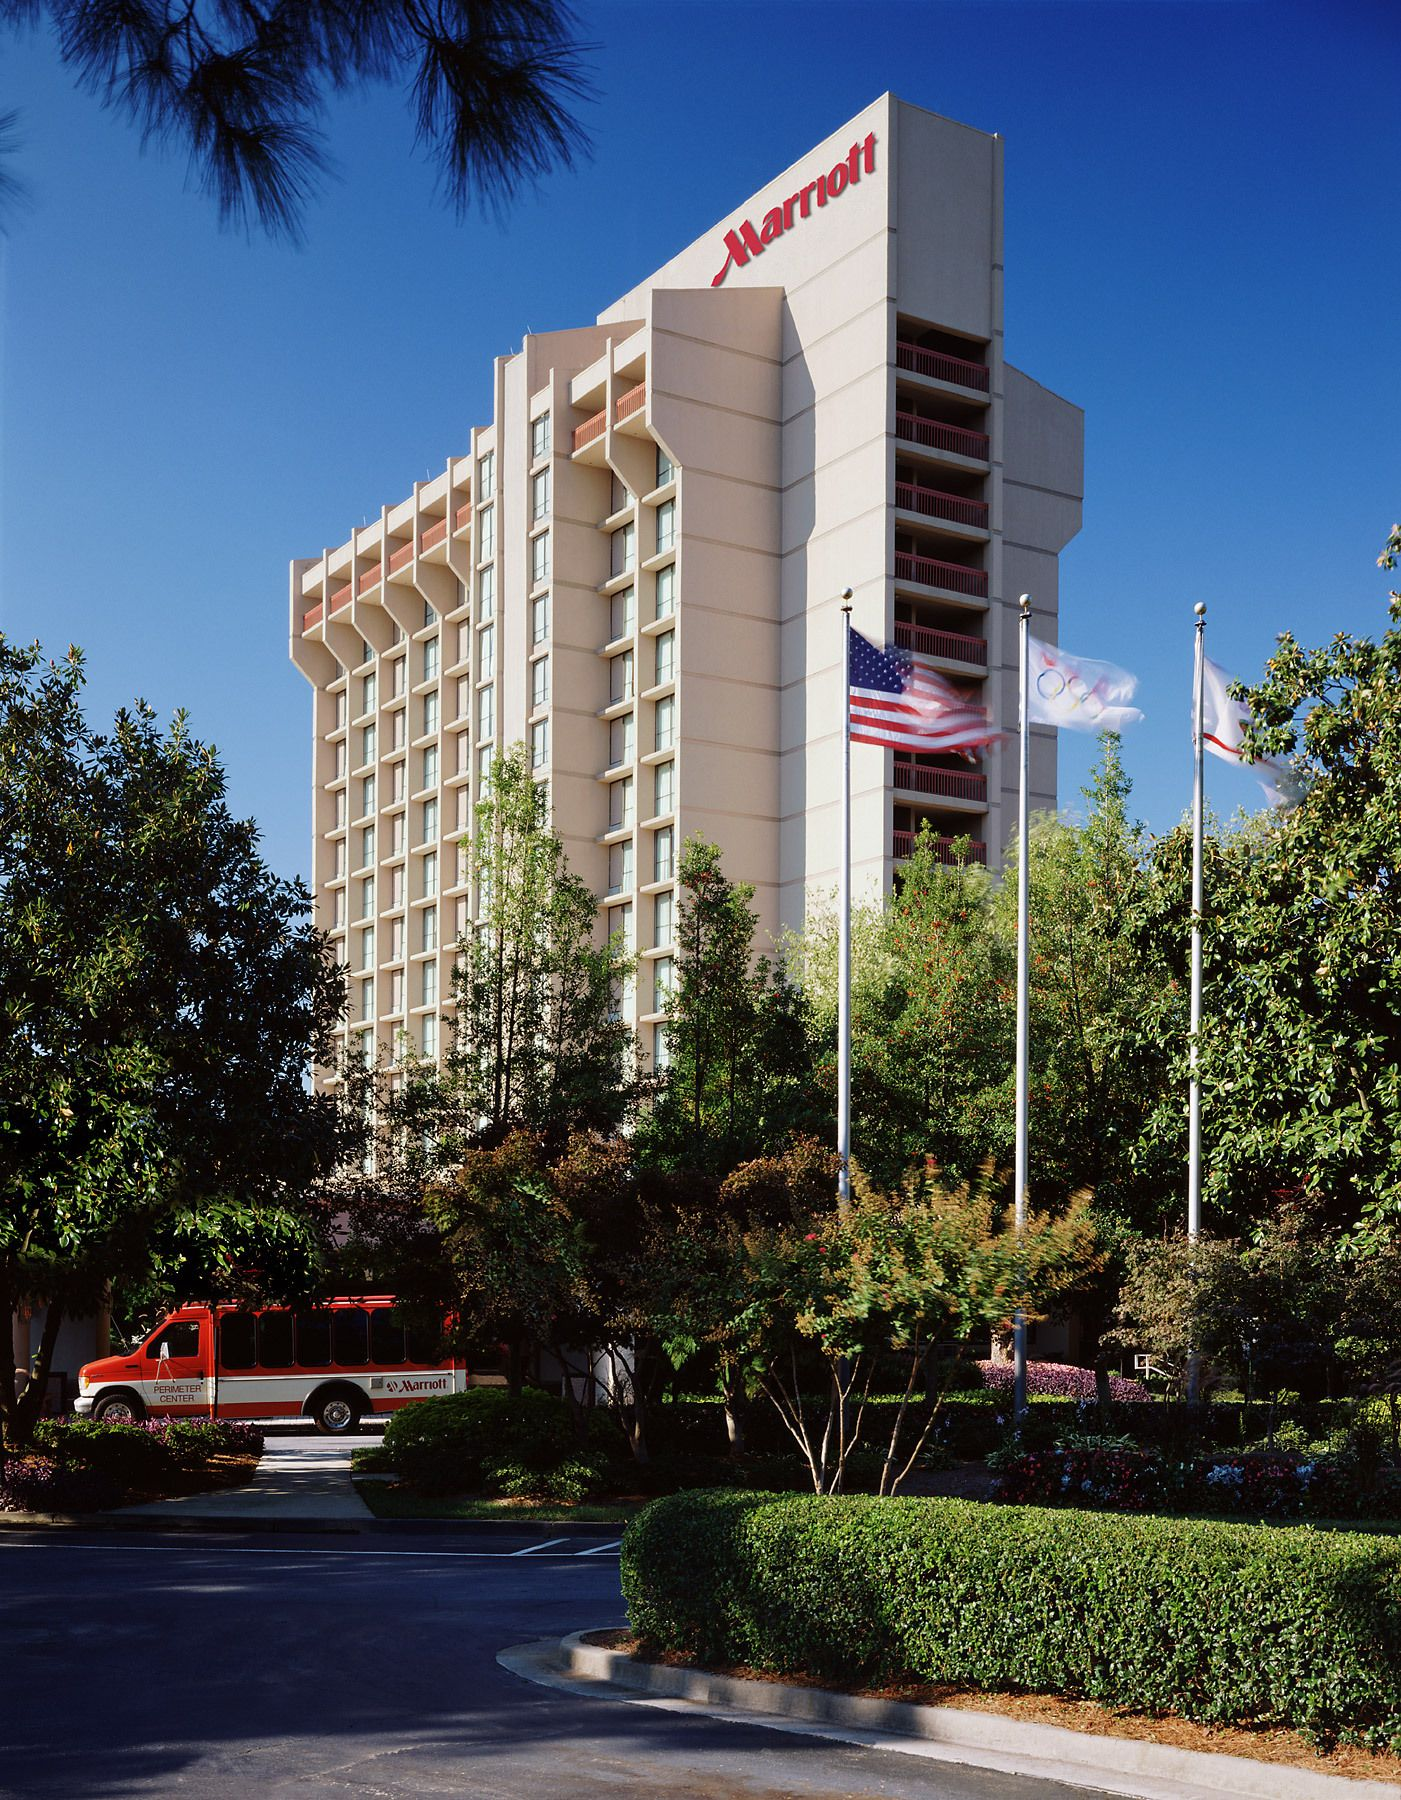 1marriott__ext__8x10.jpg